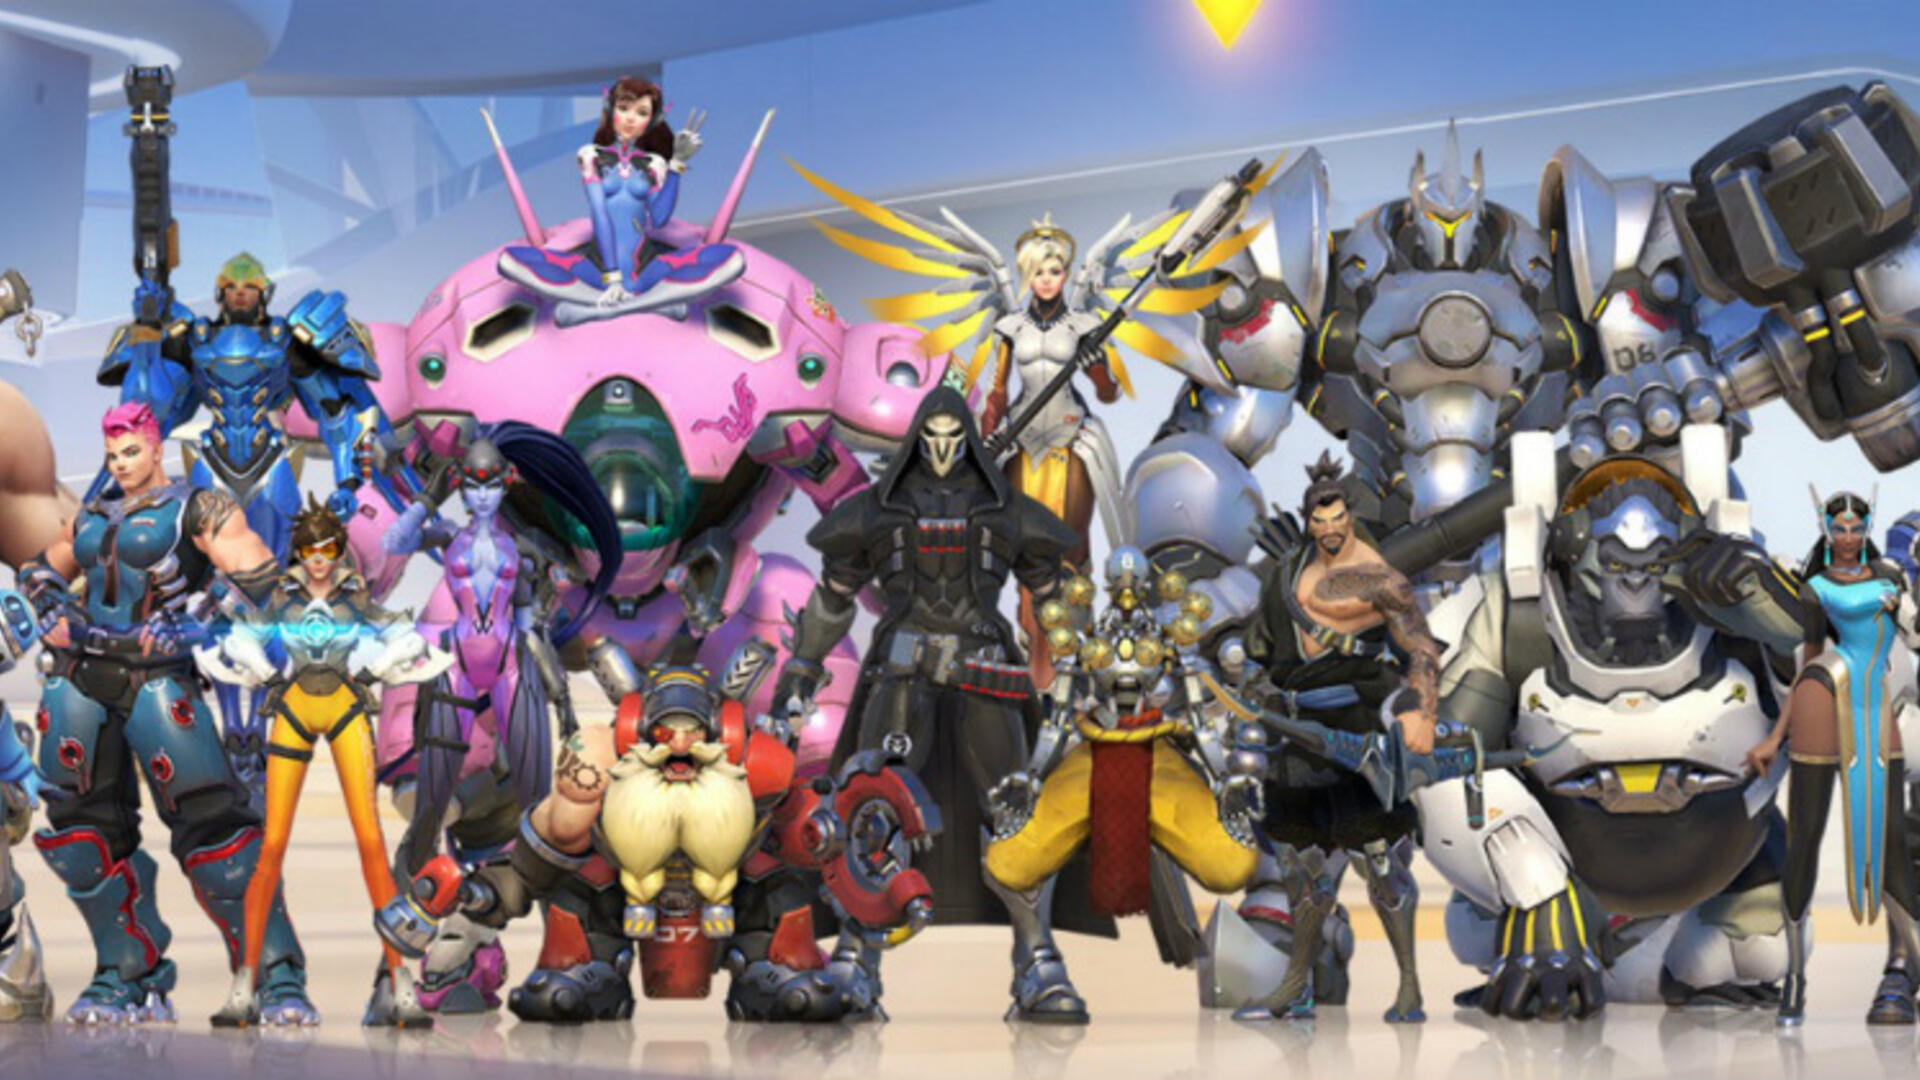 PSA: Overwatch is Free on all Consoles This Weekend